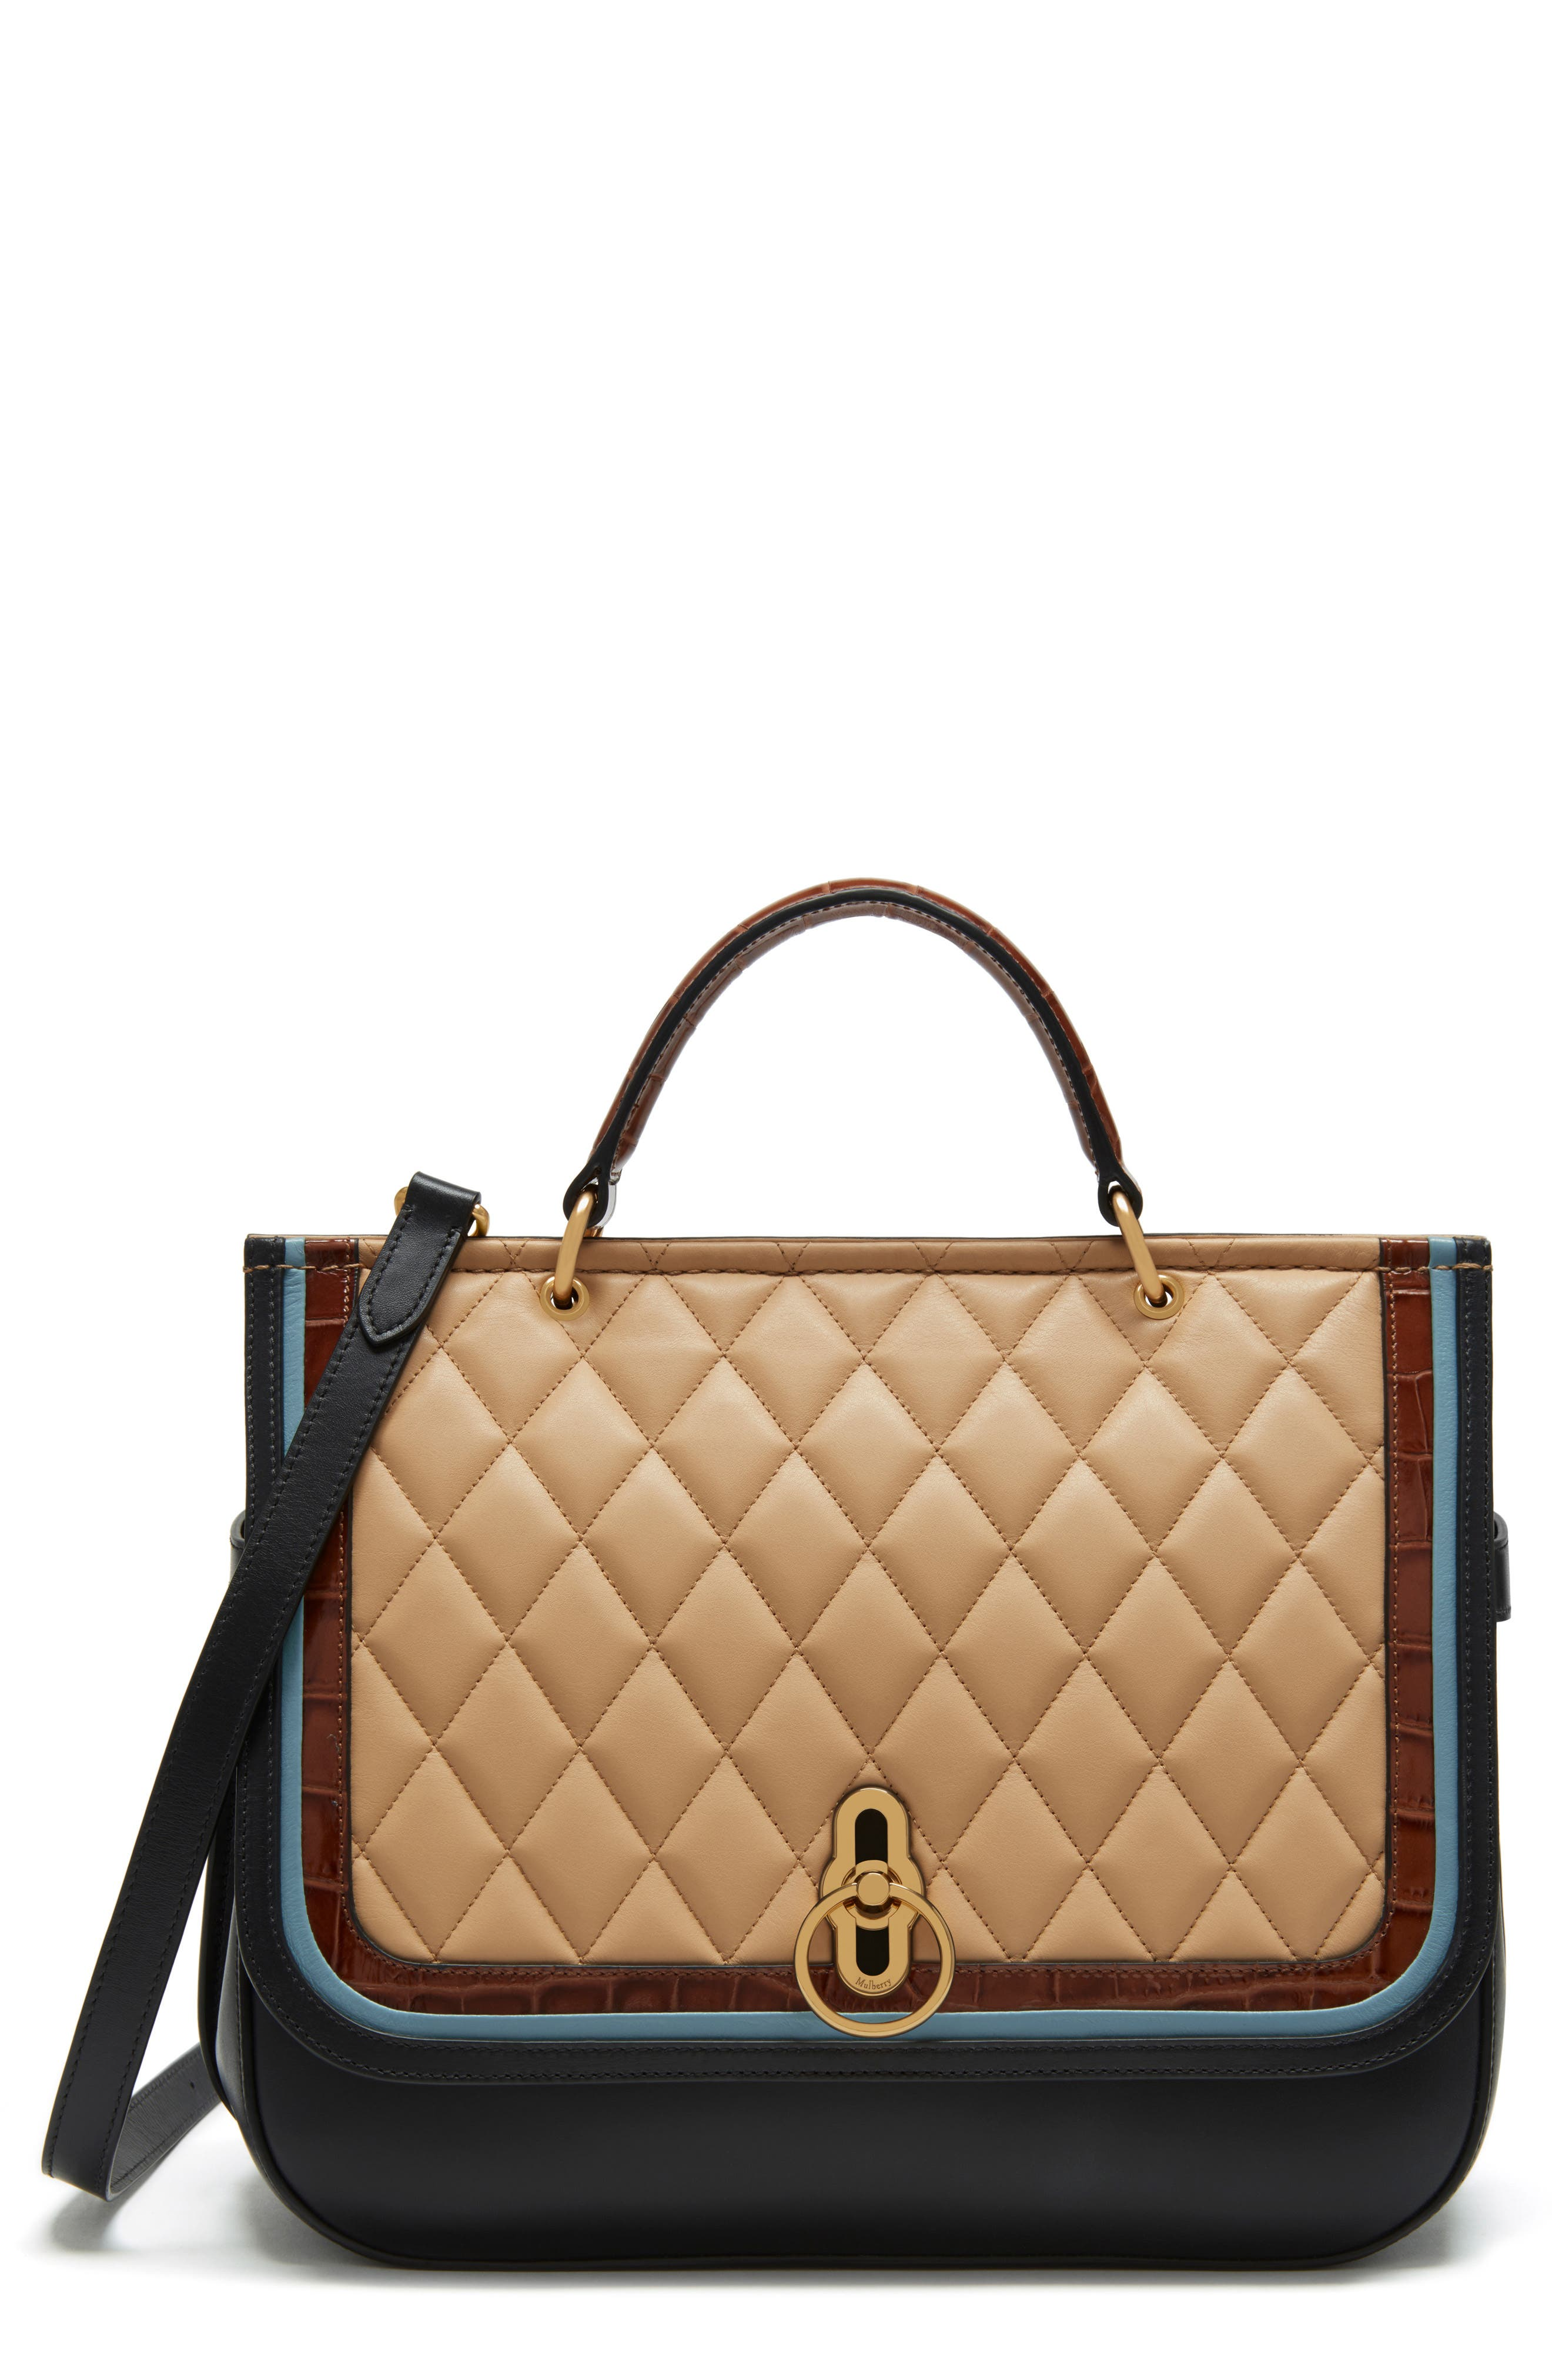 Amberley Quilted Calfskin Leather Satchel,                             Main thumbnail 1, color,                             Black/ Tan/ Multi